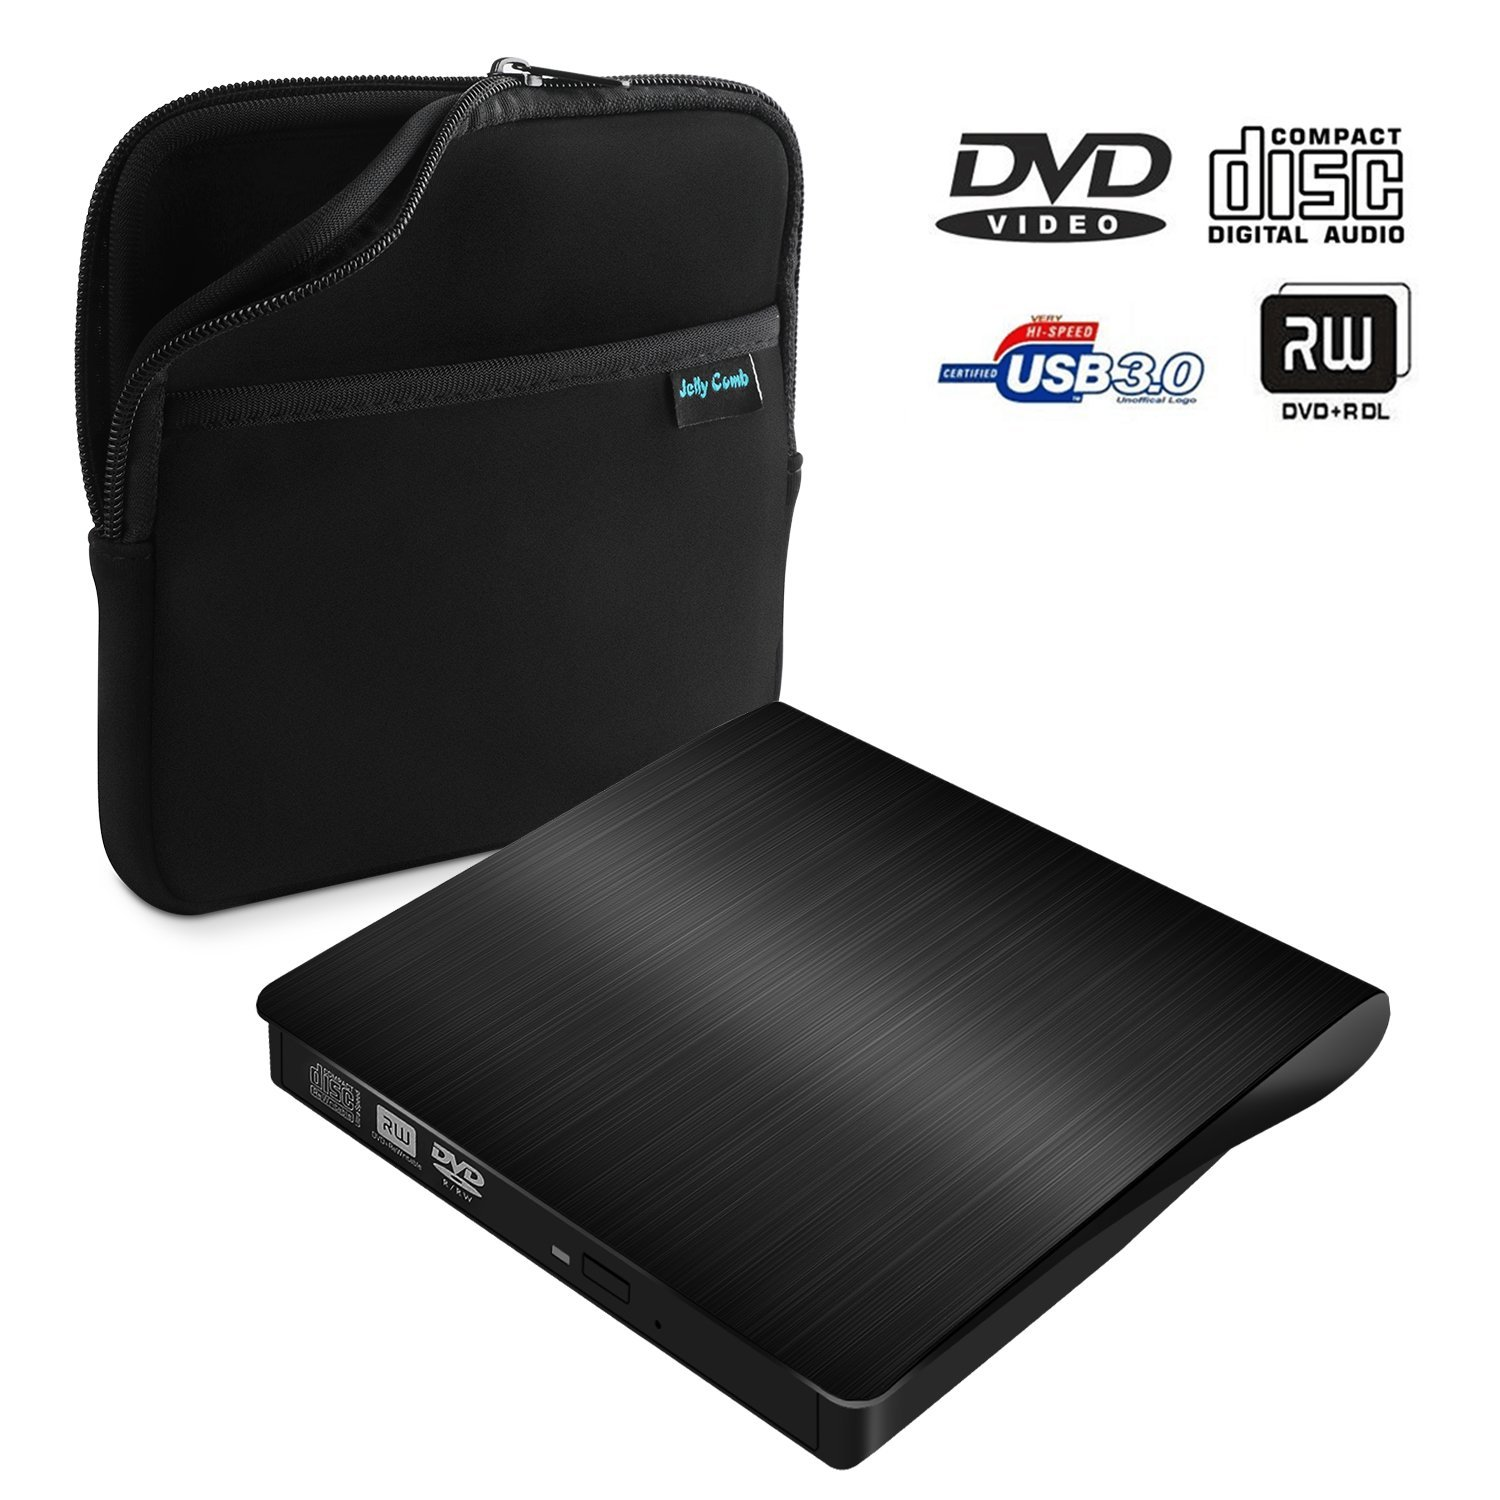 USB 3.0 External DVD CD Drive, Jelly Comb Slim Portable External DVD/CD RW Burner Drive for Laptop, Notebook, Desktop, Mac Macbook Pro, Macbook Air and More